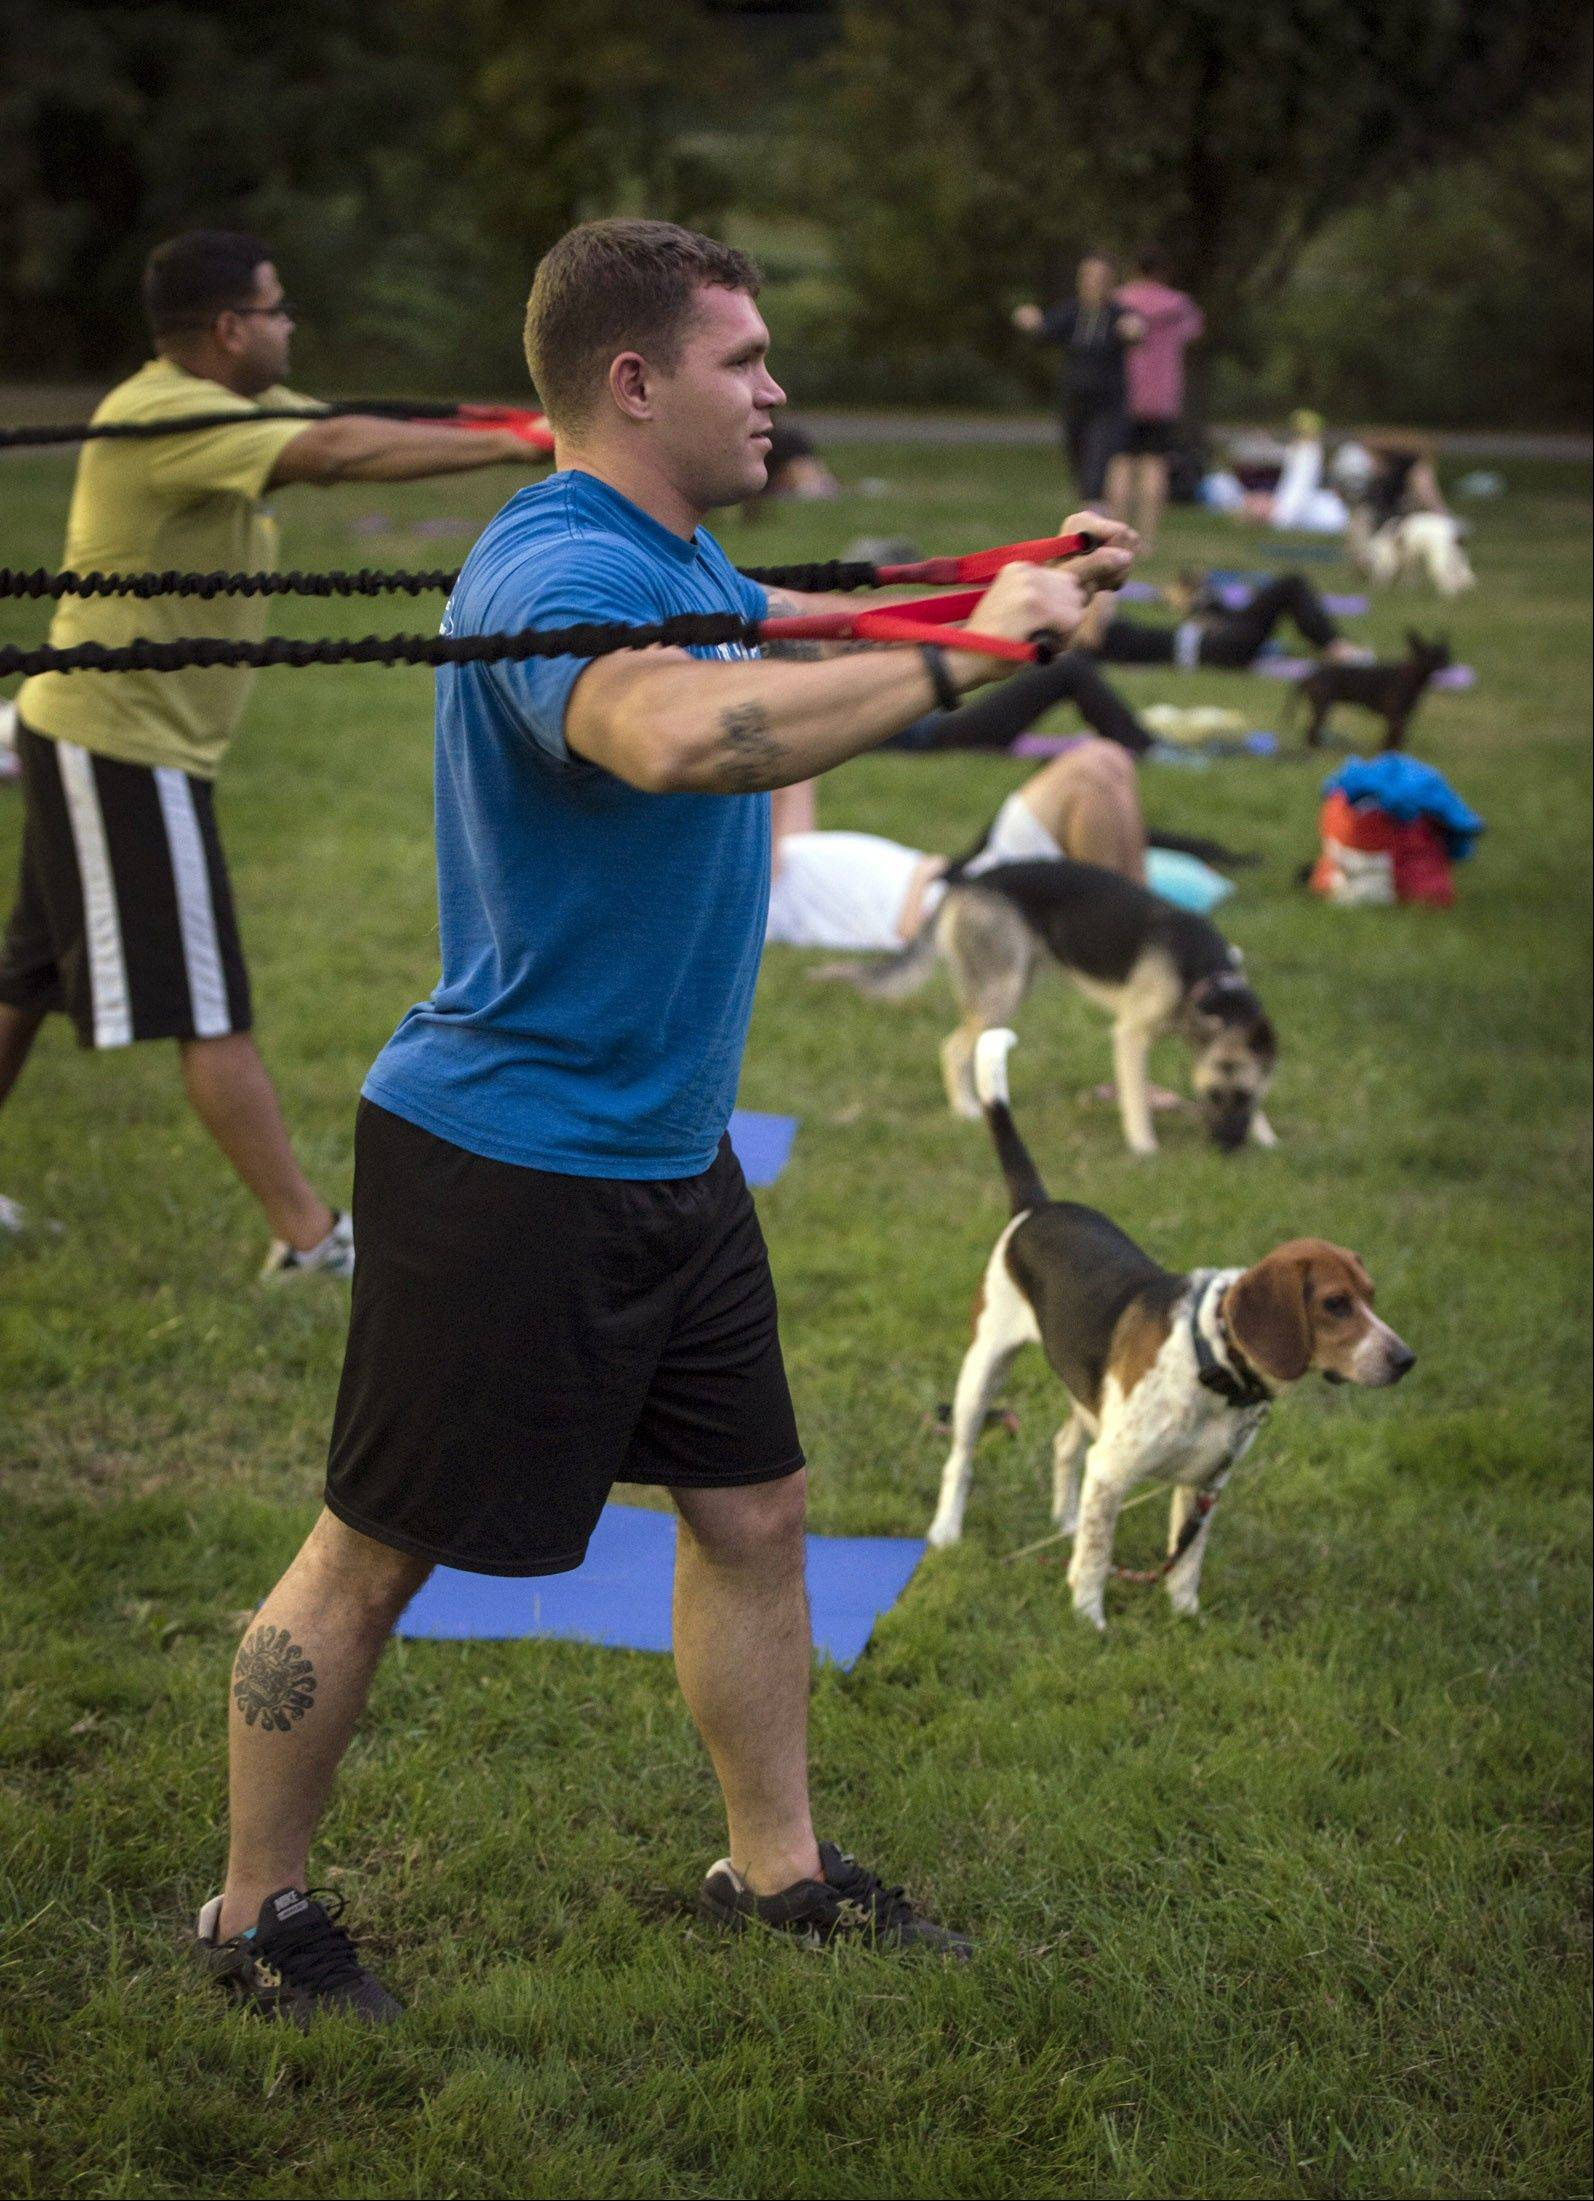 At Thank Dog! Bootcamp in Arlington, Va., Tucker Berry pulls on resistance weight bands as Tugboat stands by.